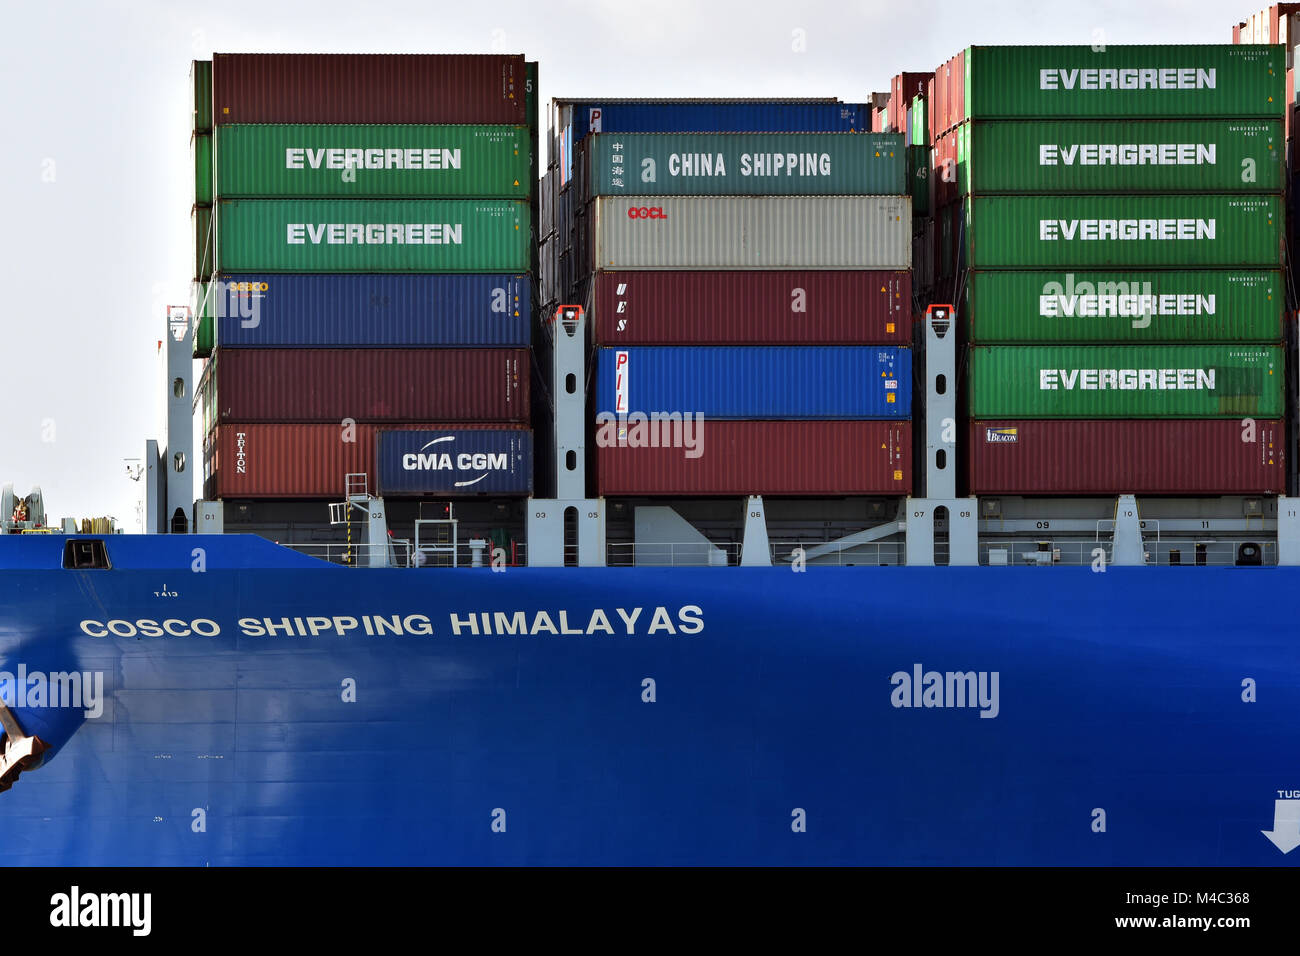 cosco shipping himalayas massive container ship in the port of southampton docks. containerisation import and export - Stock Image